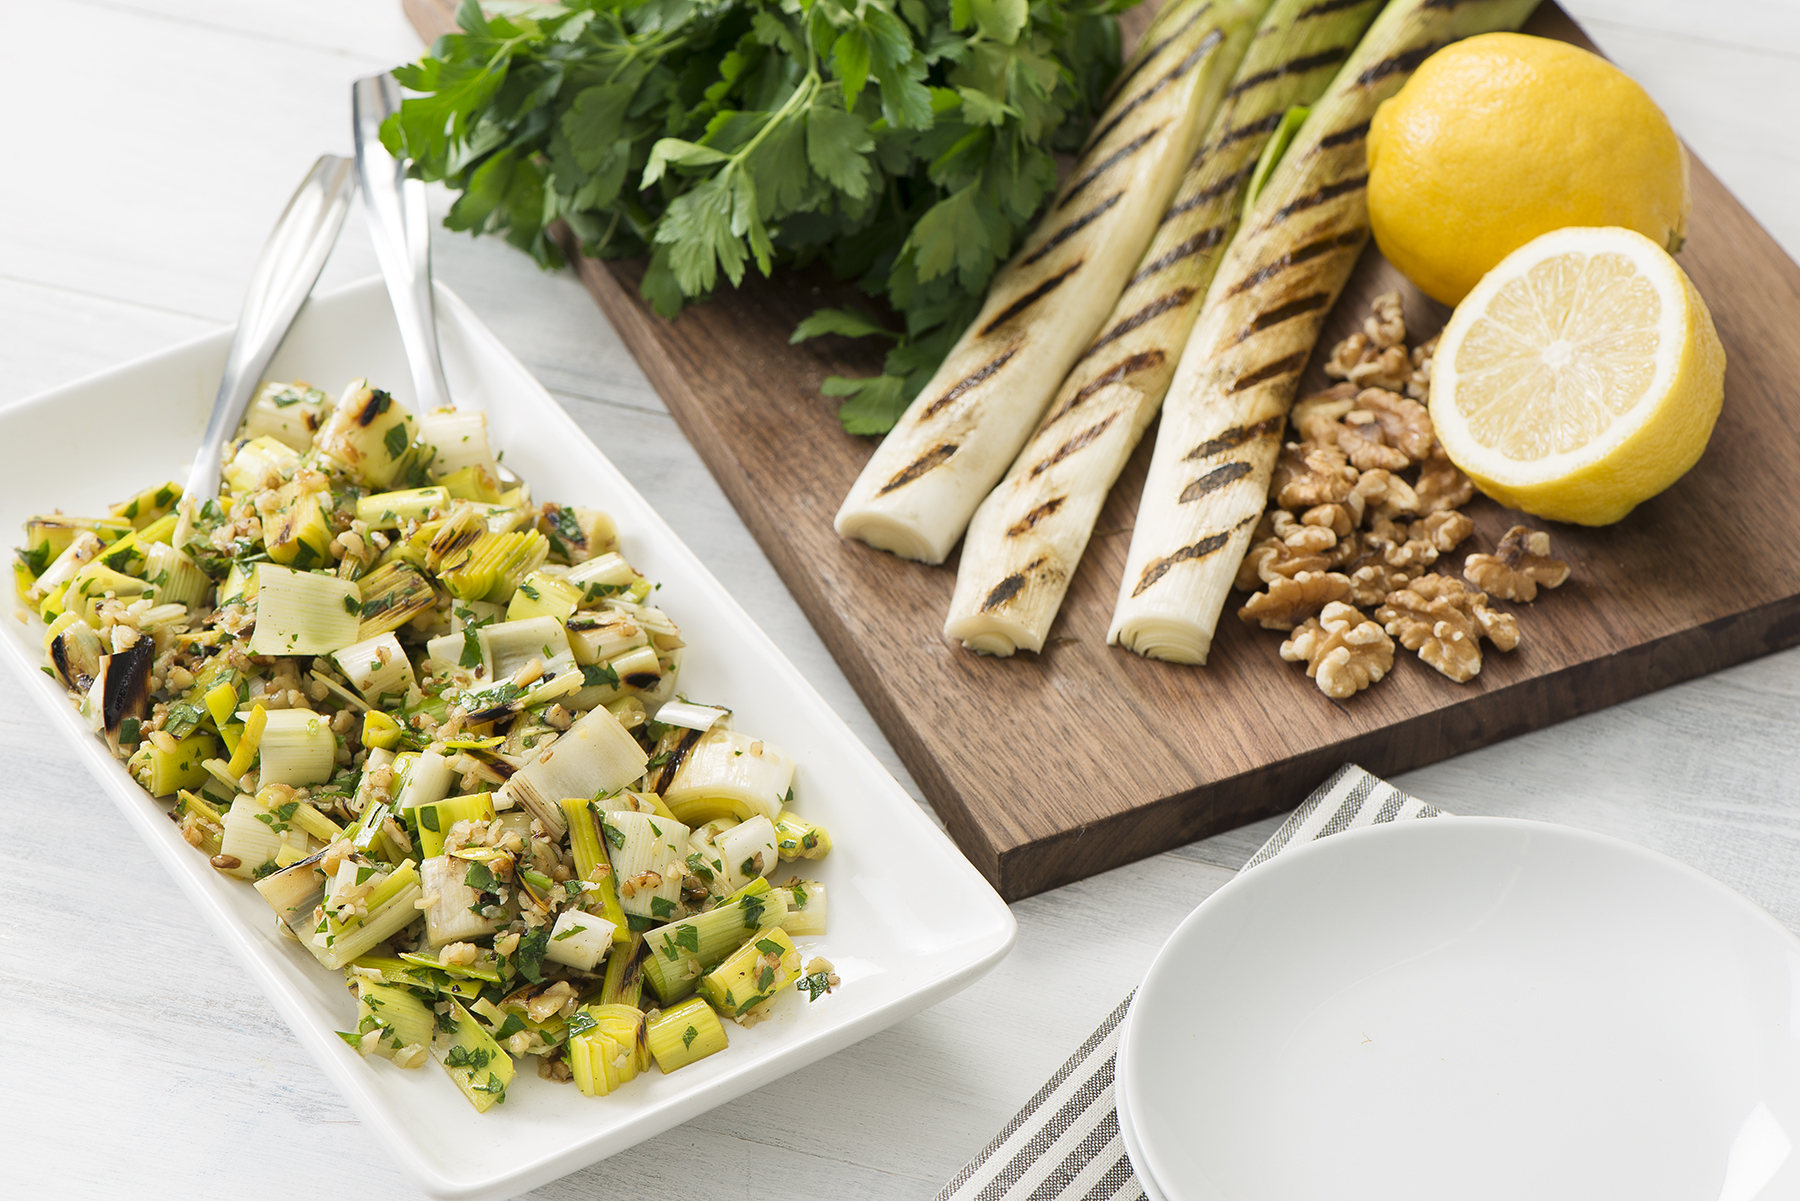 Grilled Leeks with Walnuts and Herbs